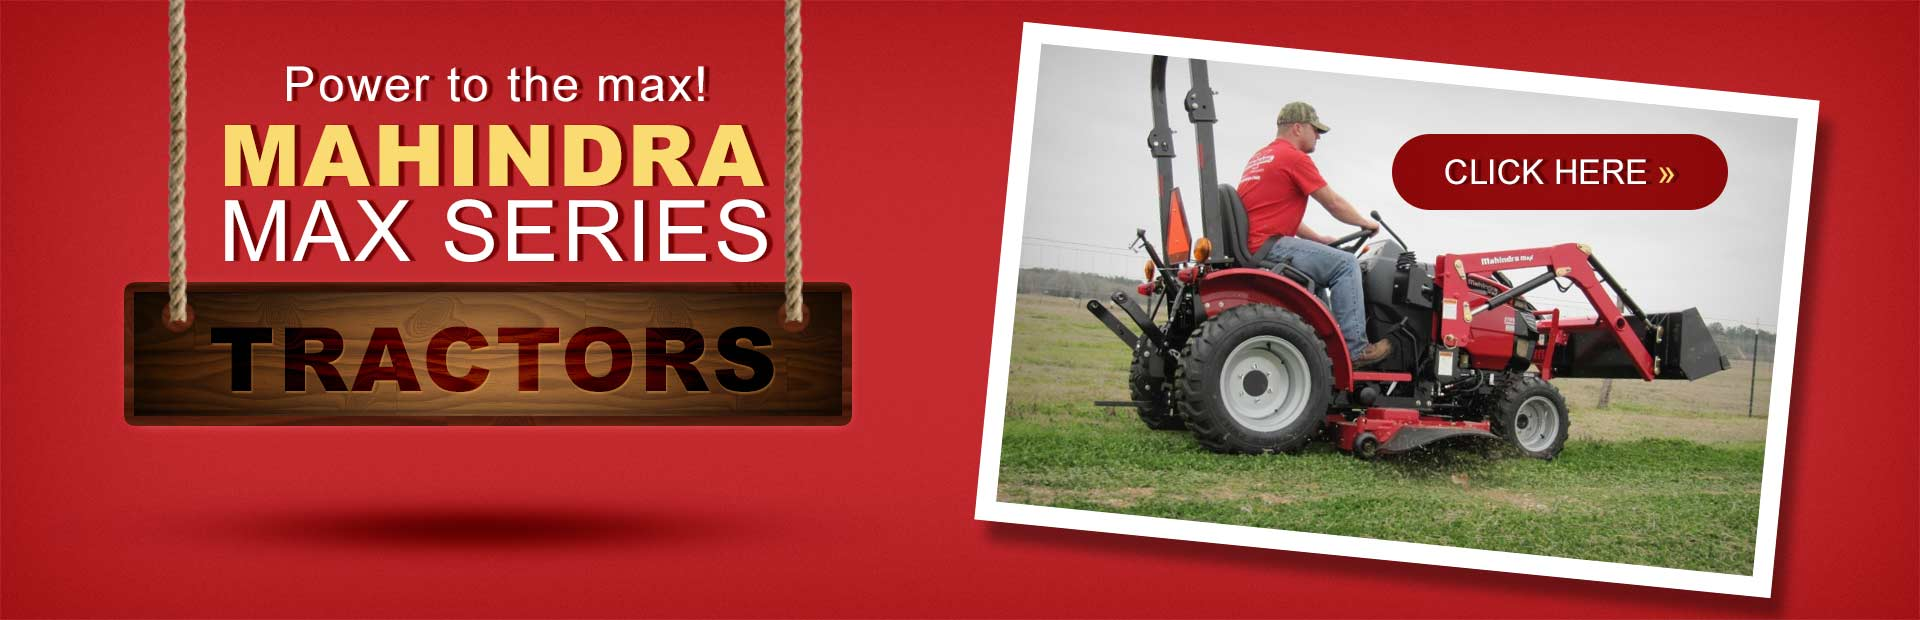 Mahindra Max series tractors have power to the max! Click here to view our selection.